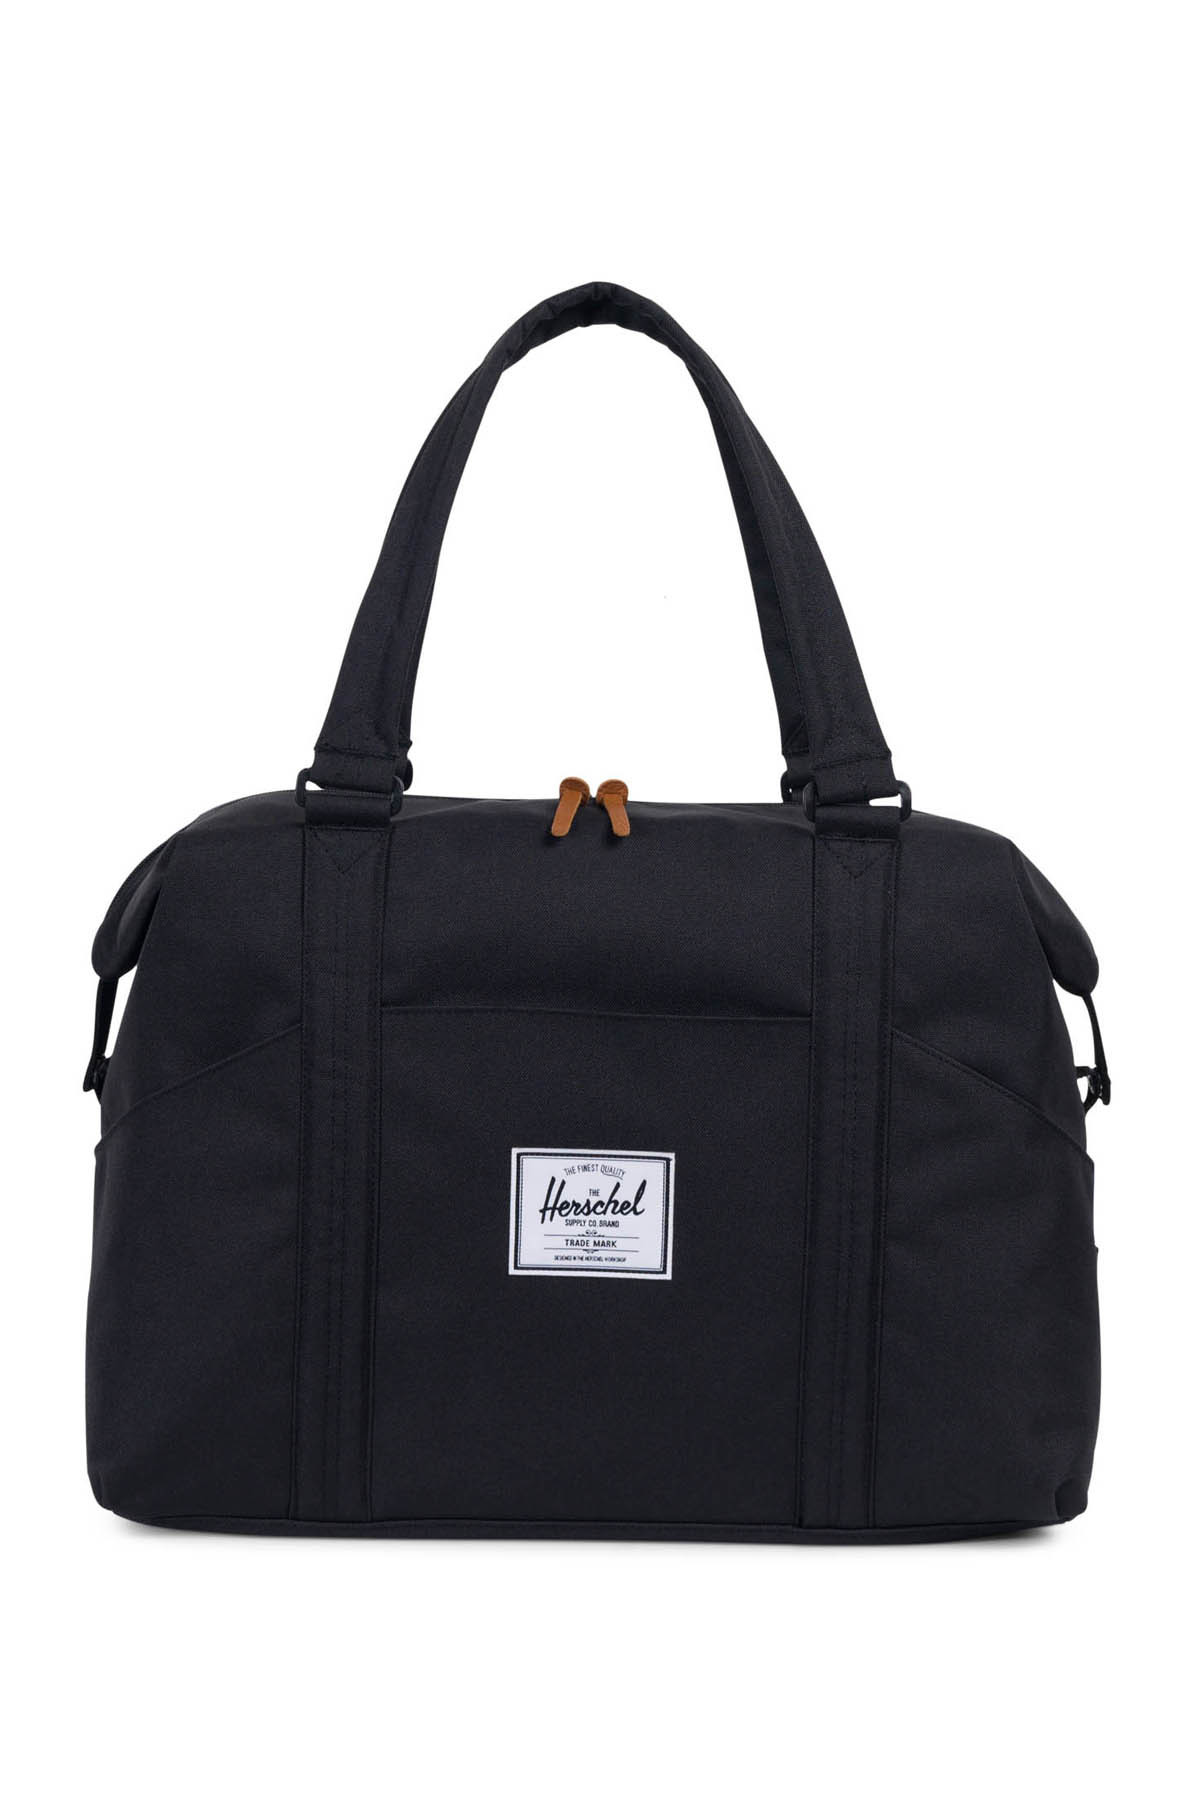 herschel supply co. unisex strand duffles spor çantası